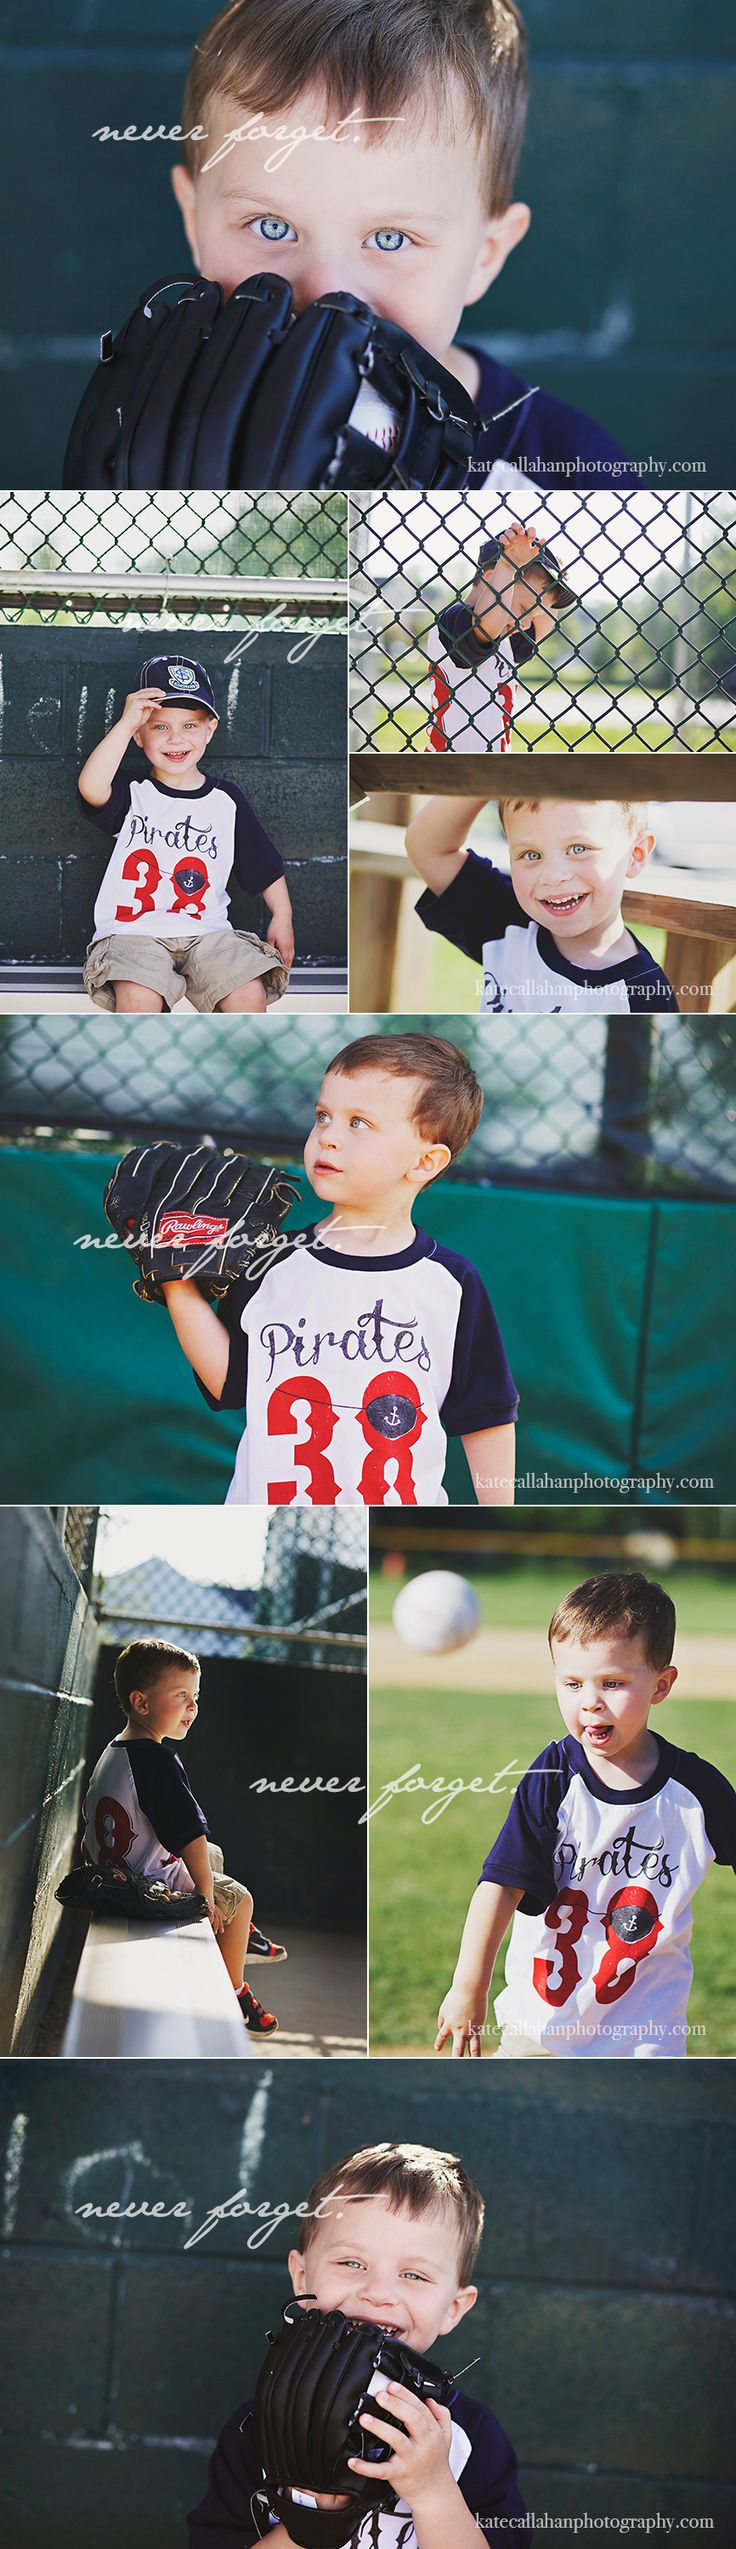 Surprise Baseball Pictures for Dad — Newark, DE child photographer | Kate Callahan Photography